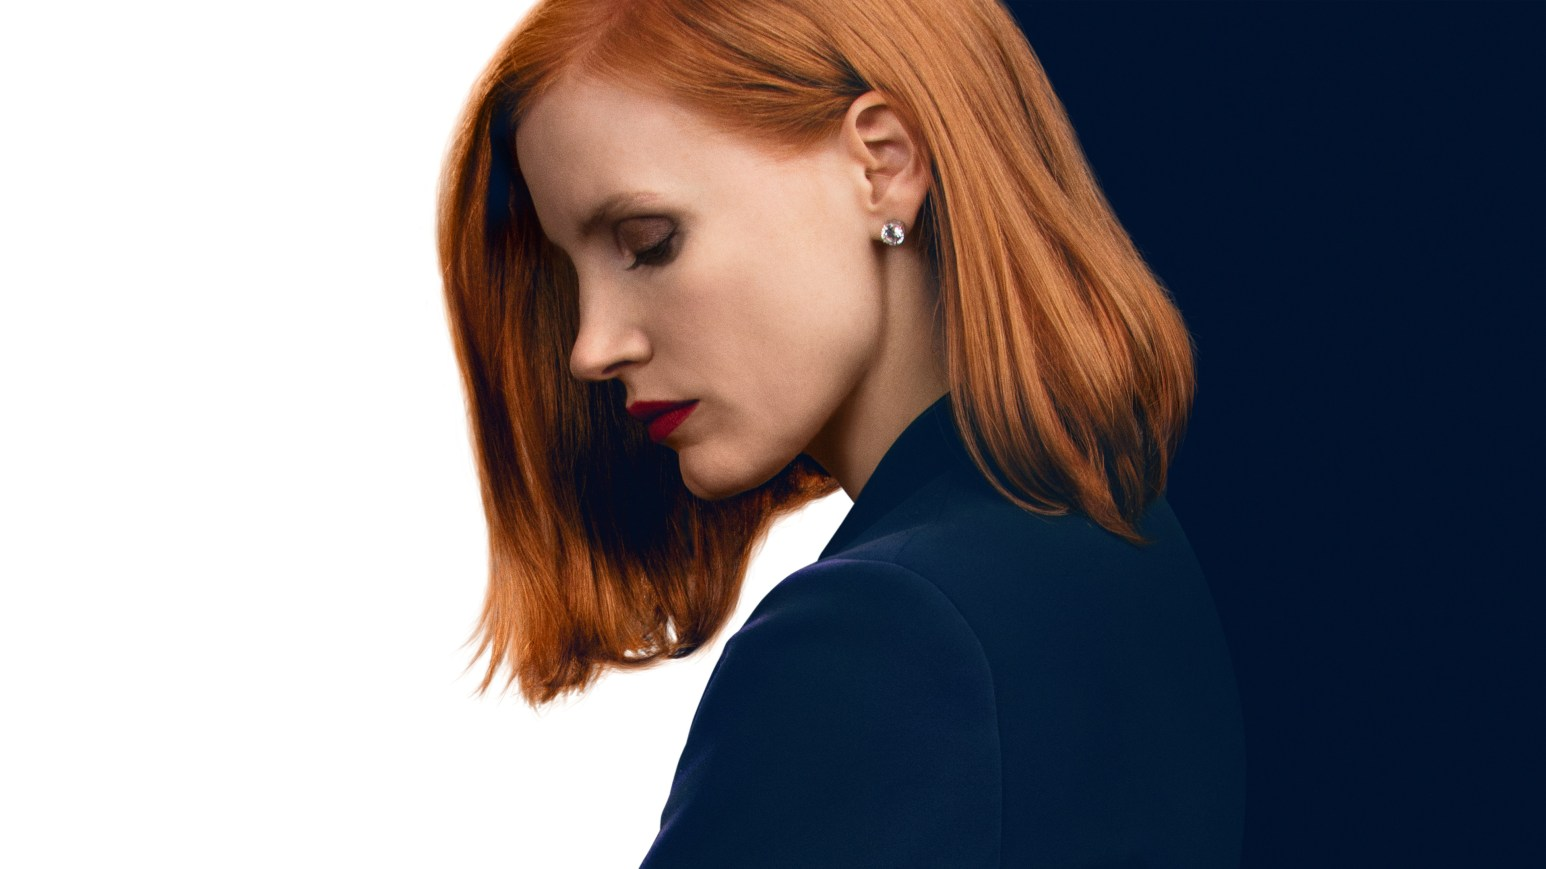 Jessica Chastain in black and white